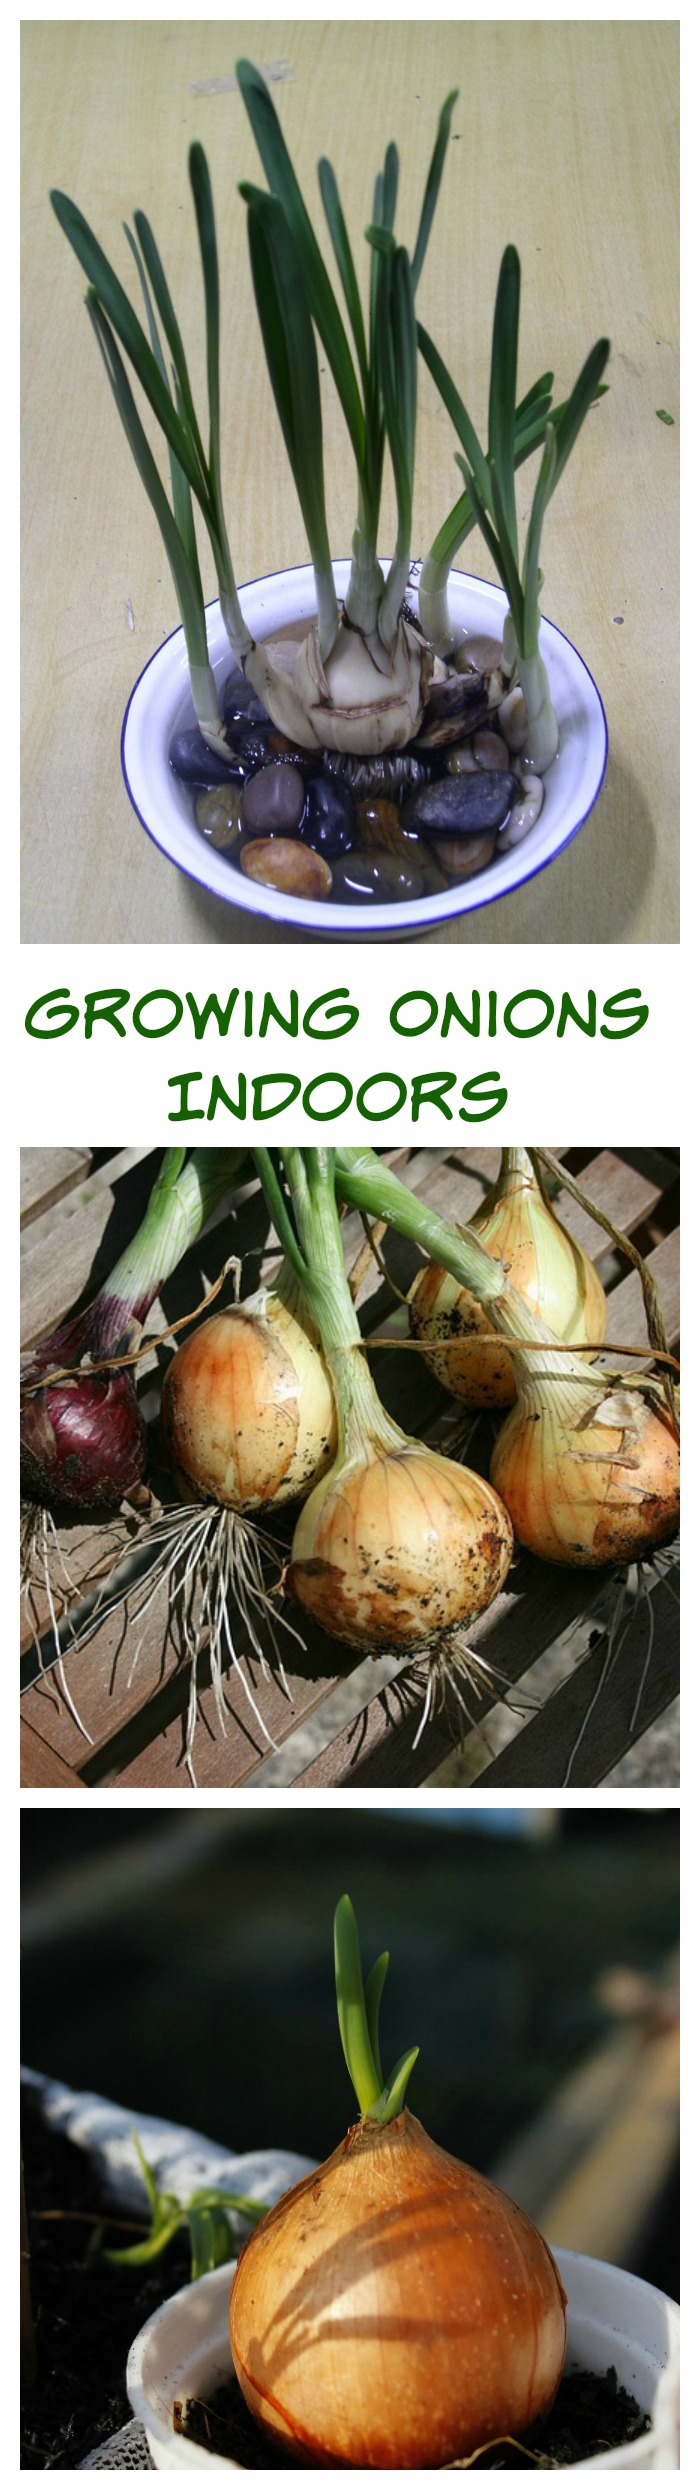 Growing Onions indoors is really quite easy. Onions are persistent and those roots just want to keep growing. See several different ways to grow onions indoors.